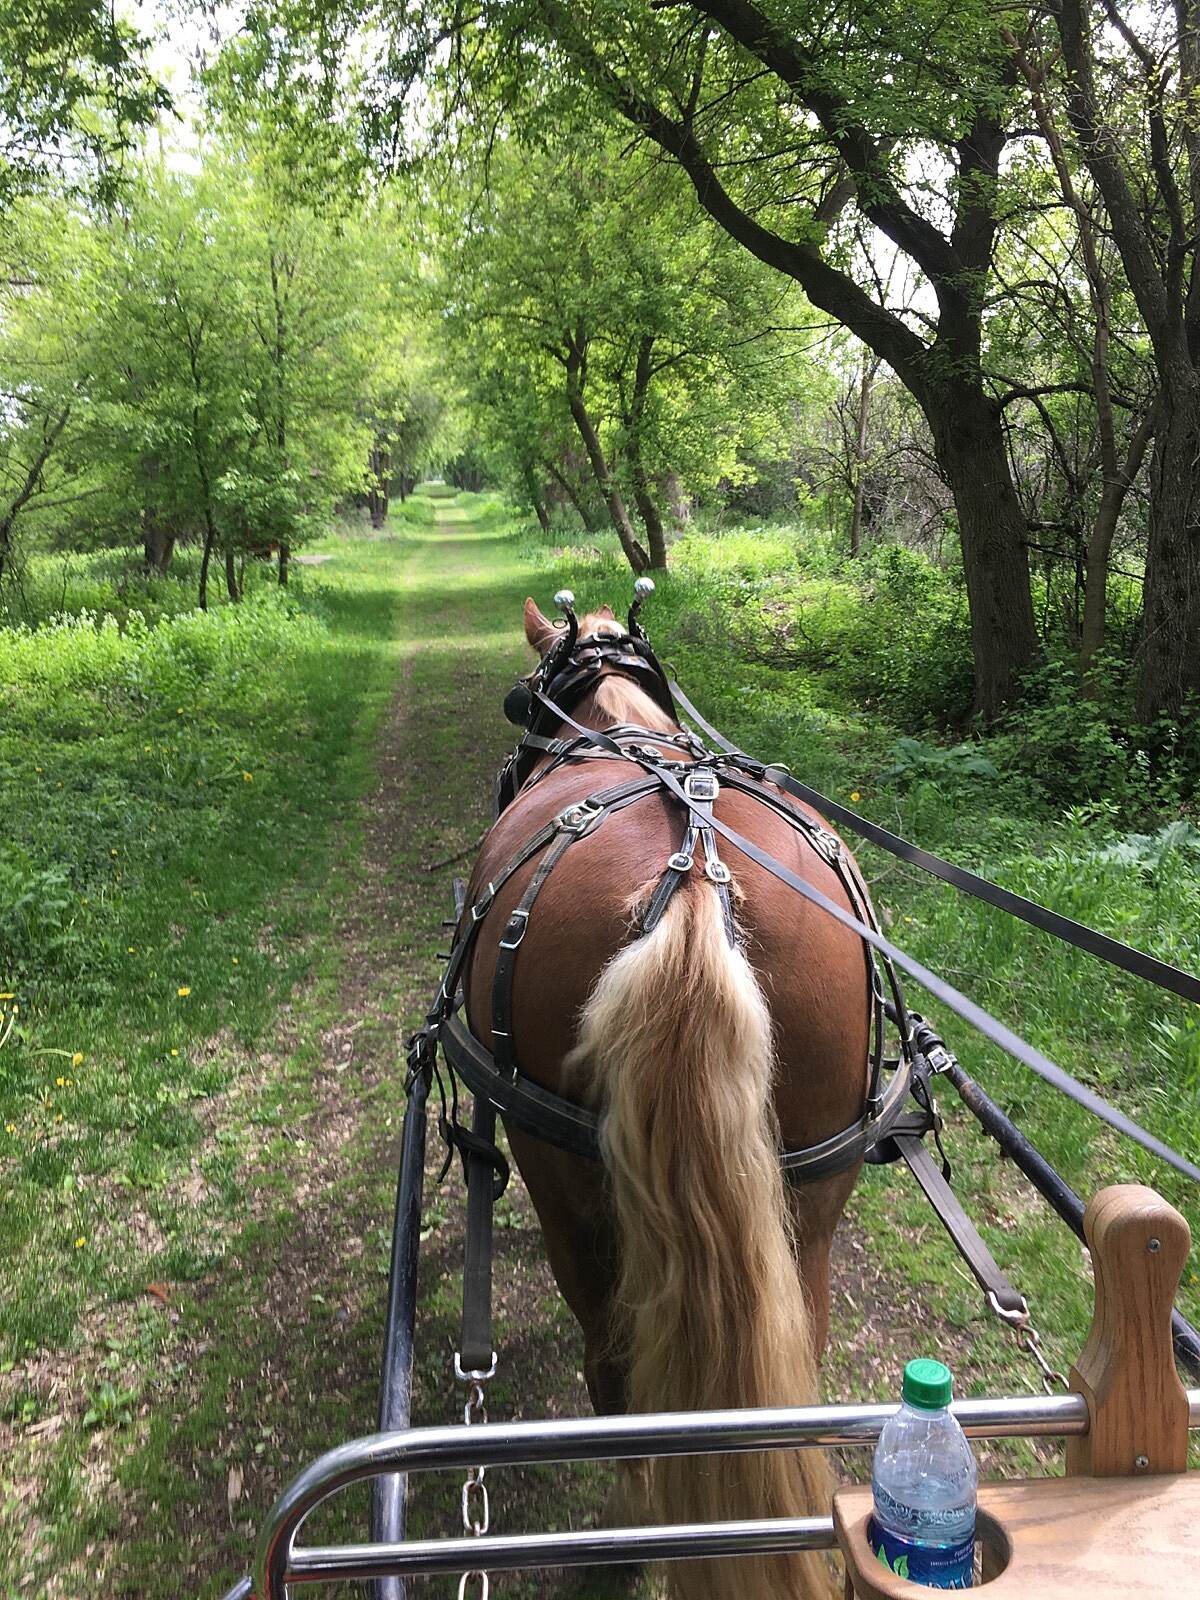 Pelishek-Tiffany Nature Trail Trail leaving Clinton WI Oberlander mare Nicky